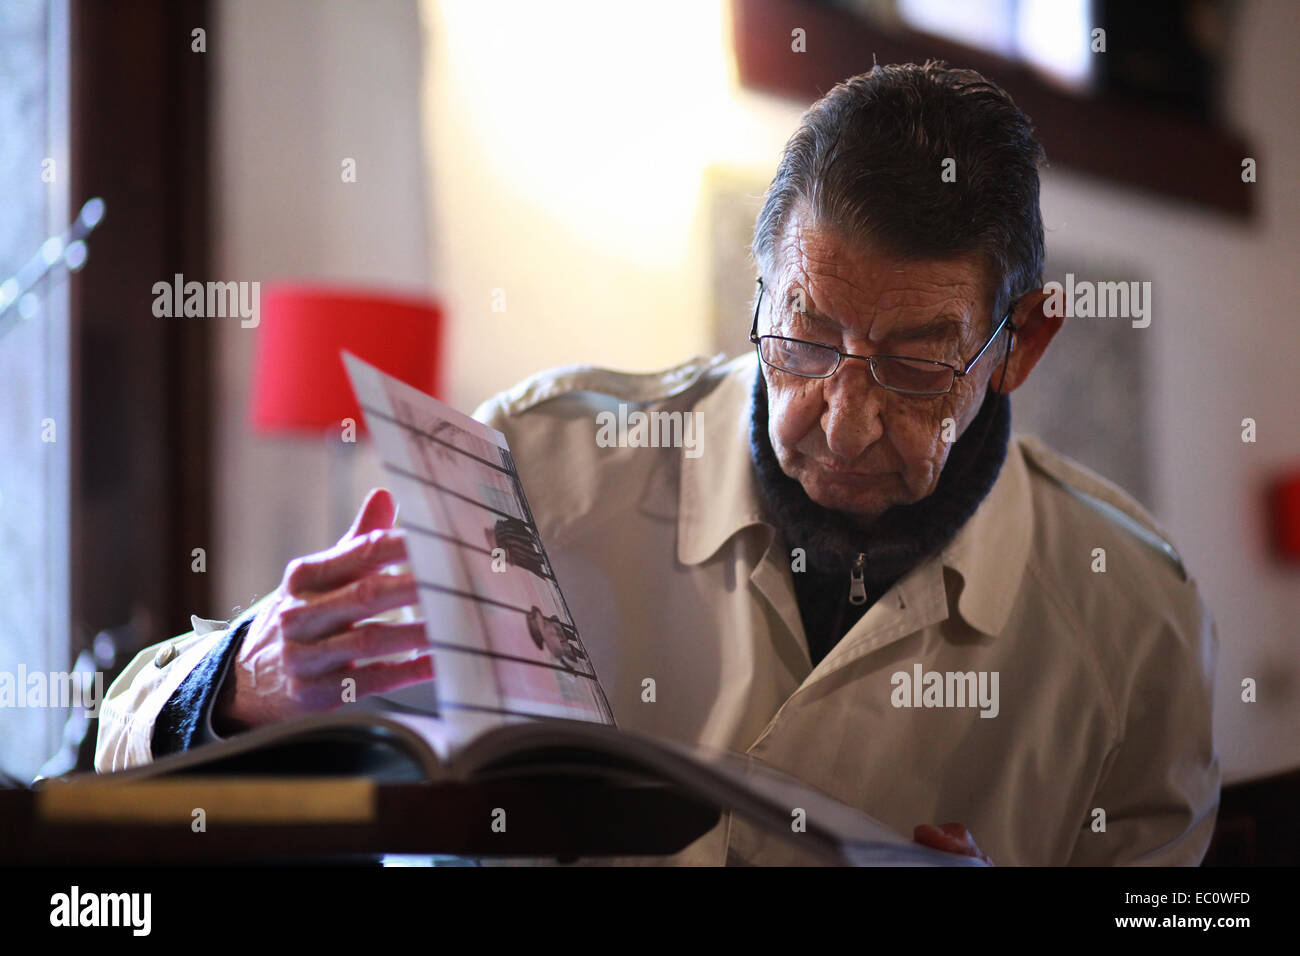 Portrait of an Italian senior citizen sitting in a wine bar, being sunk in a book of photography. Spilimbergo, Italy - Stock Image